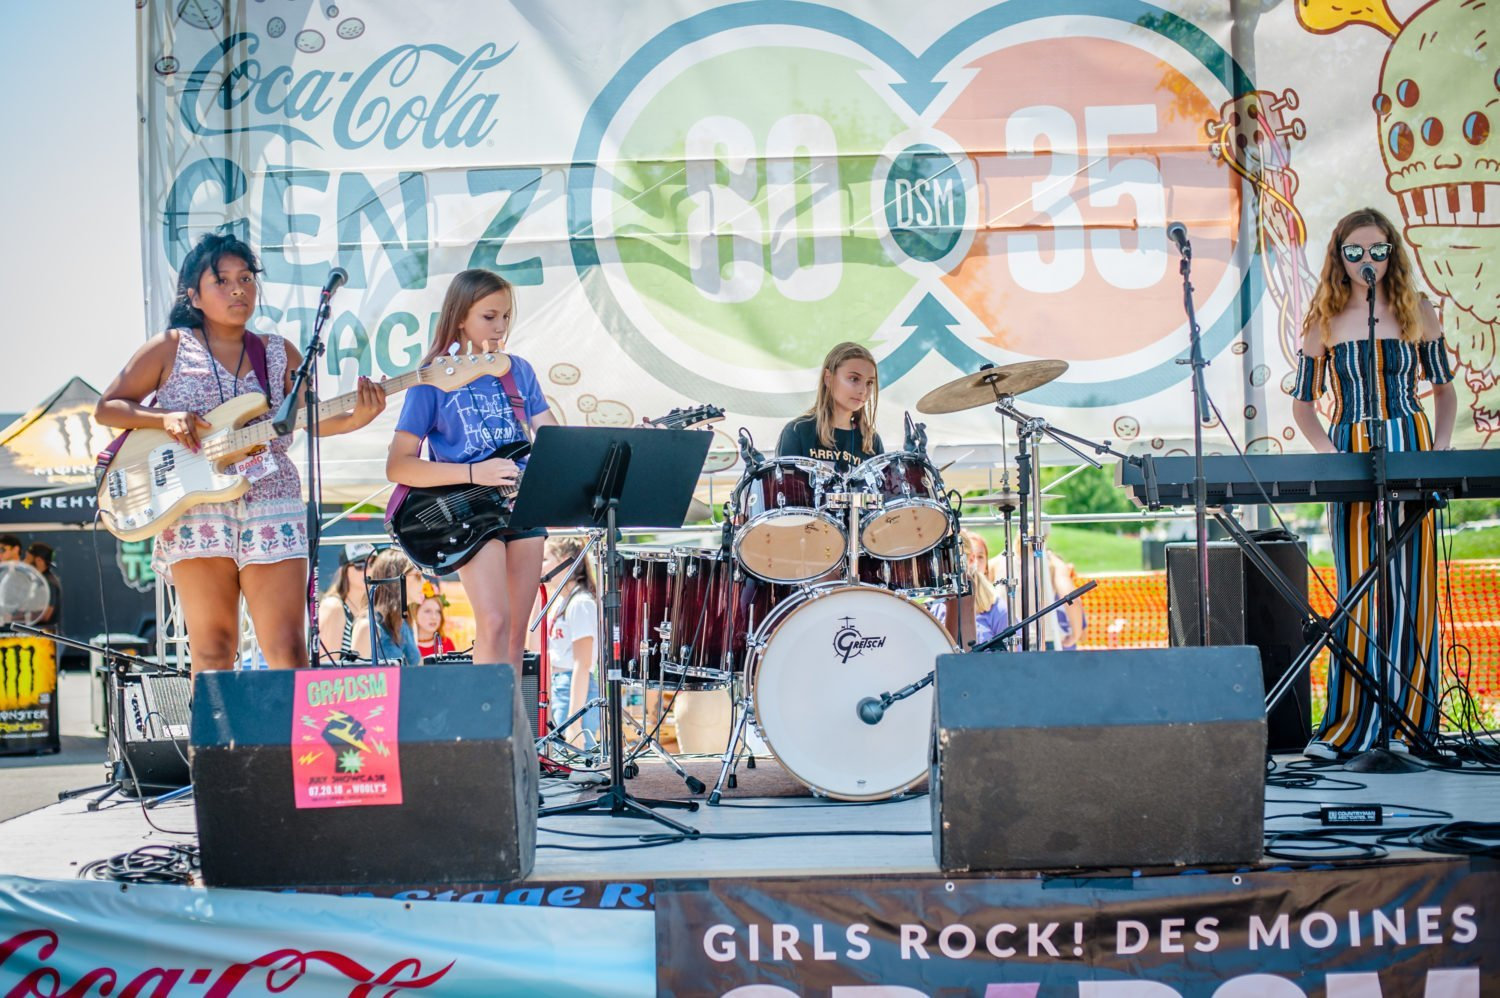 Girls Rock! Des Moines performing at 80/35 Music Festival 2018 in Des Moines, Iowa